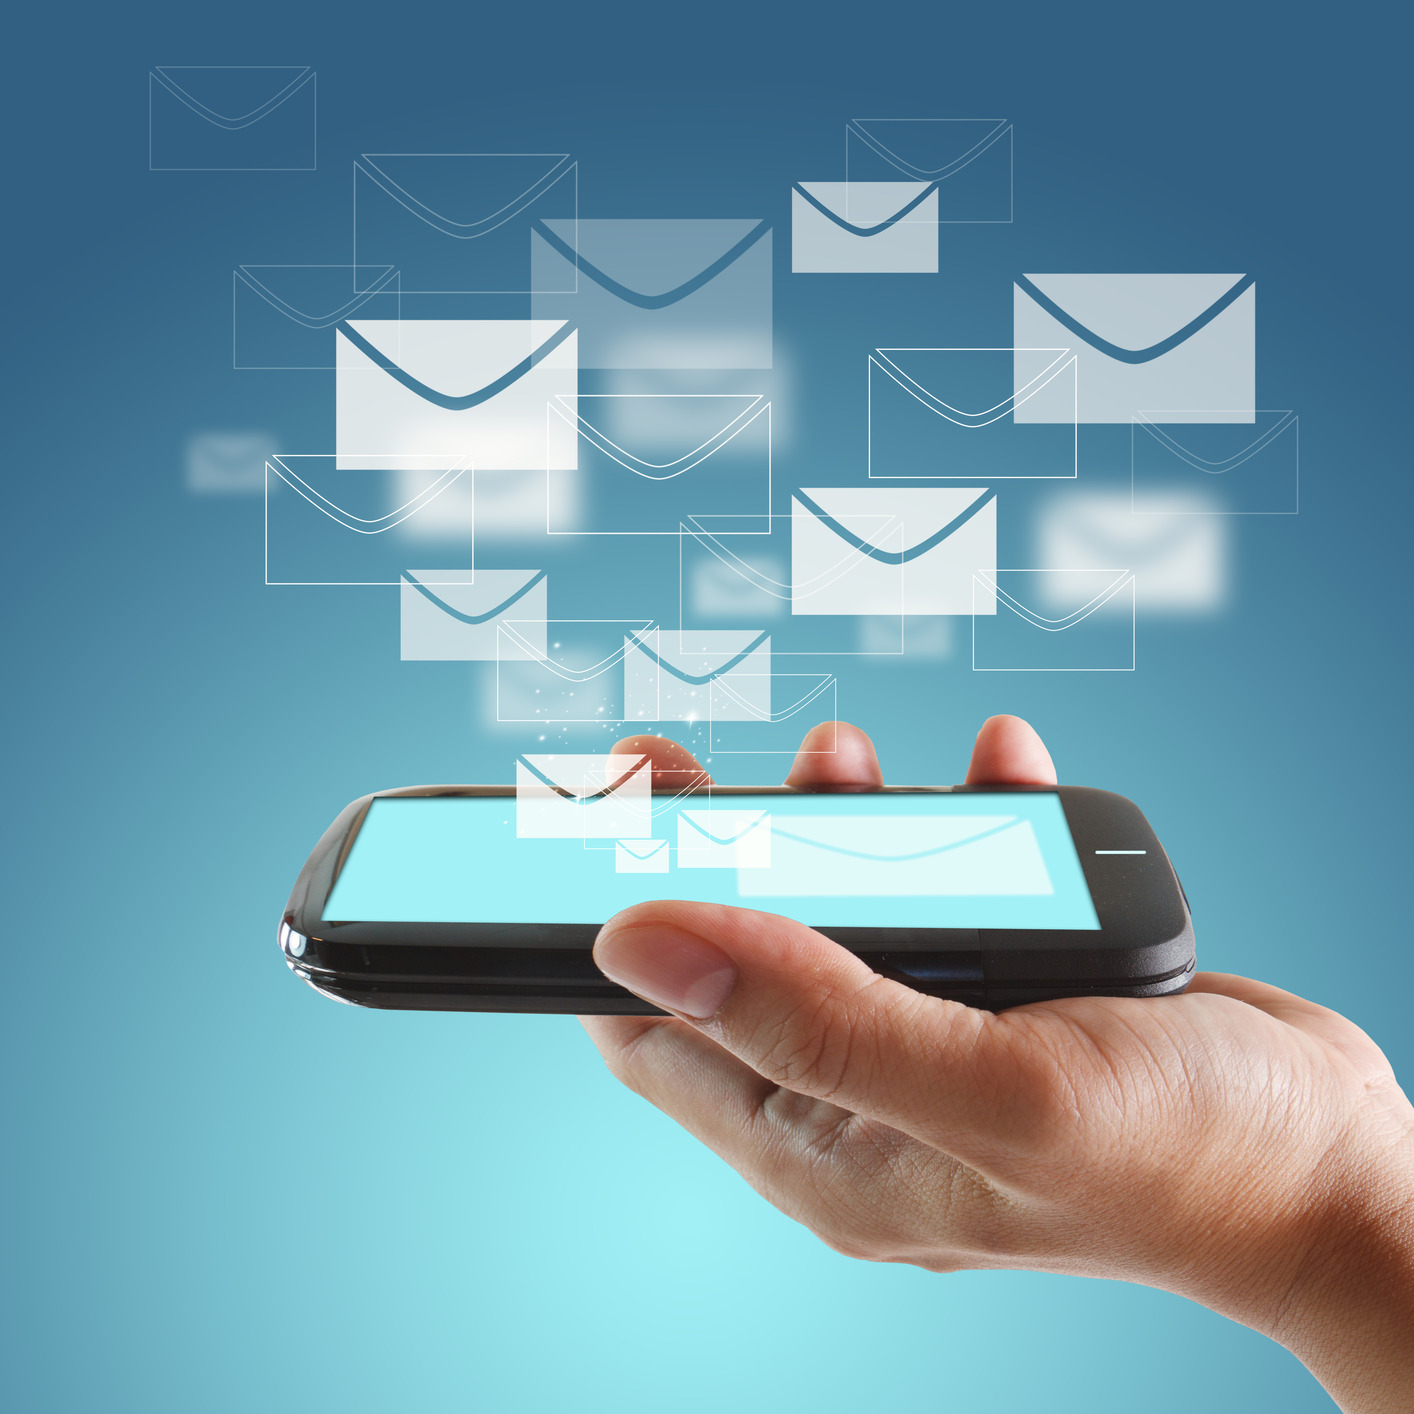 Why Emails Sent From iPhone Do Not Appear In Mail?